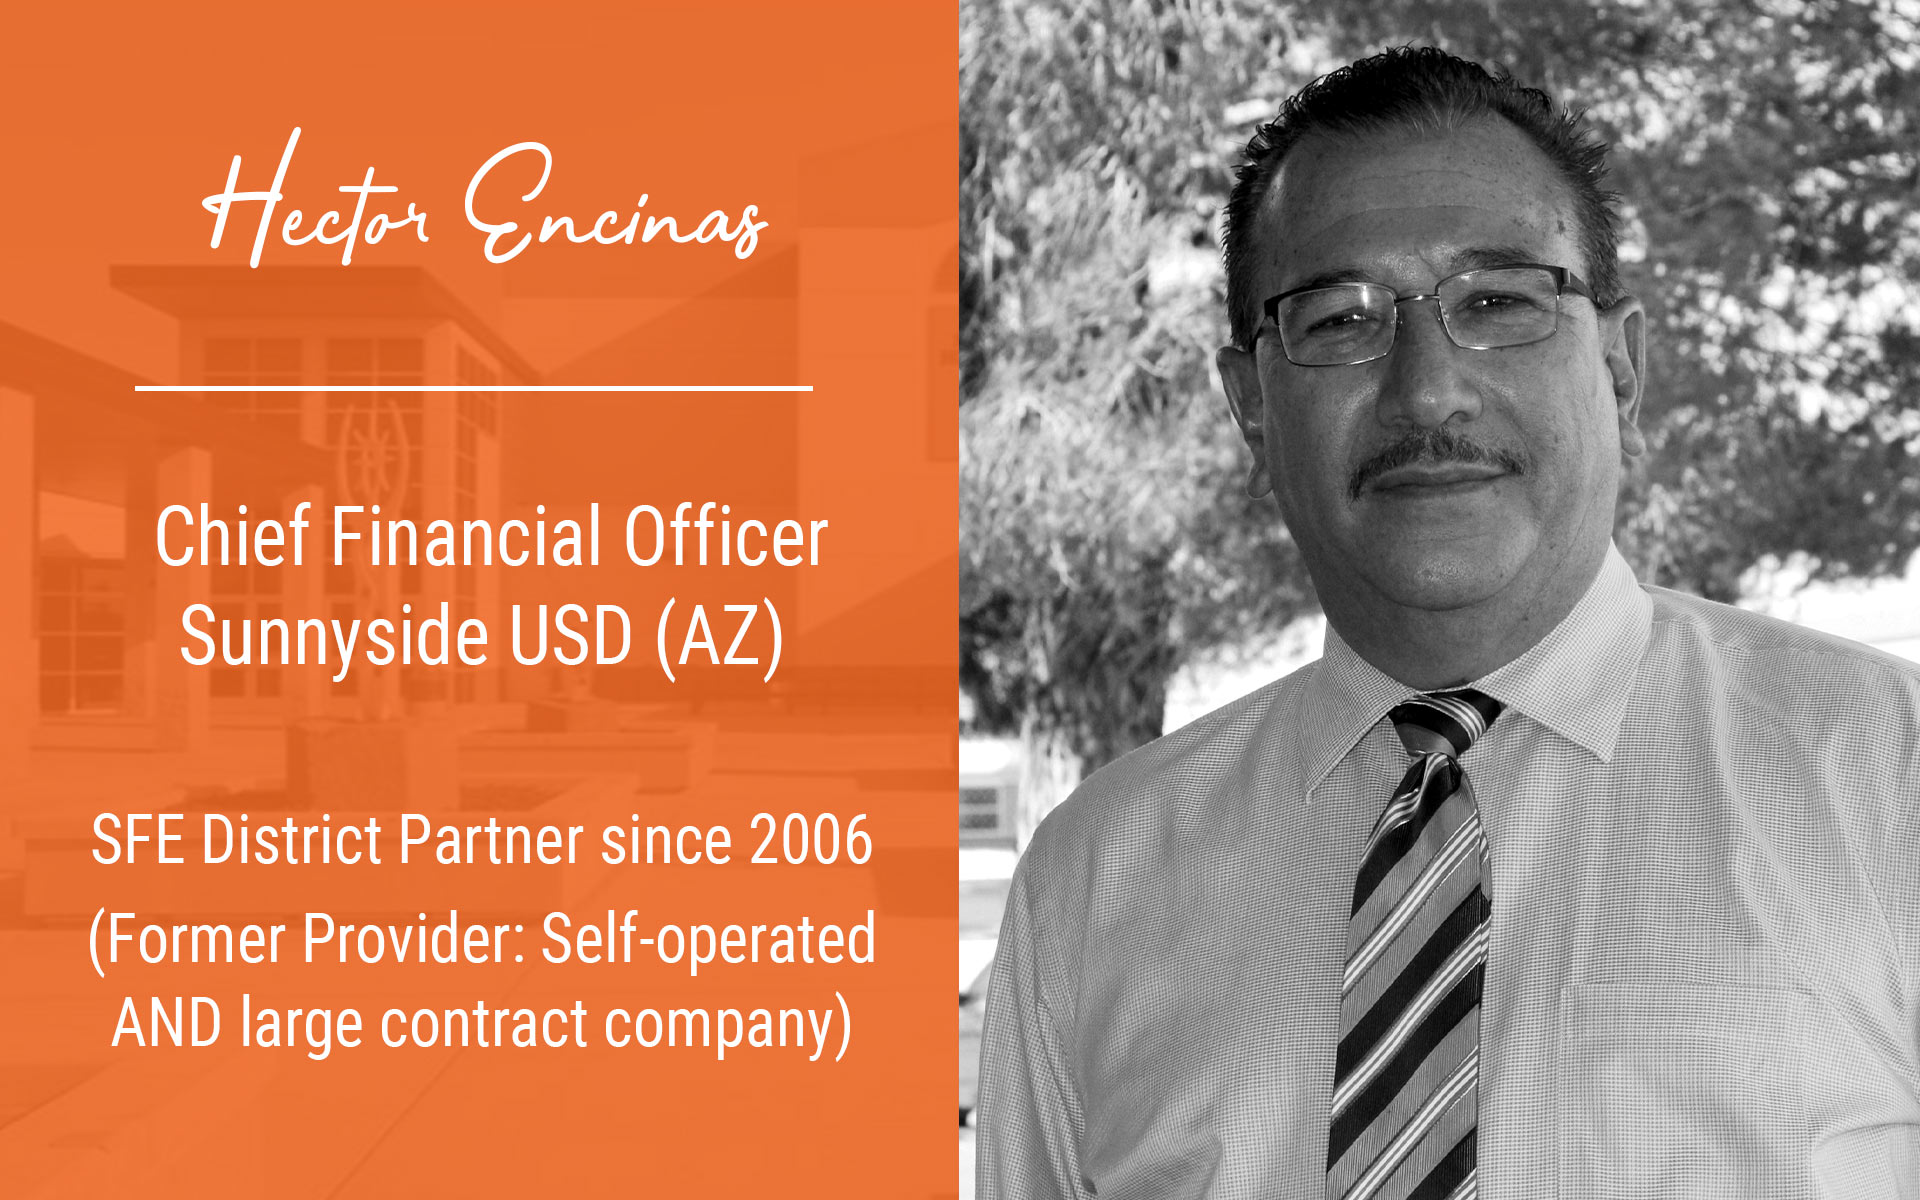 Success Story featuring Hector Encinas | Chief Financial Officer Sunnyside USD (AZ)